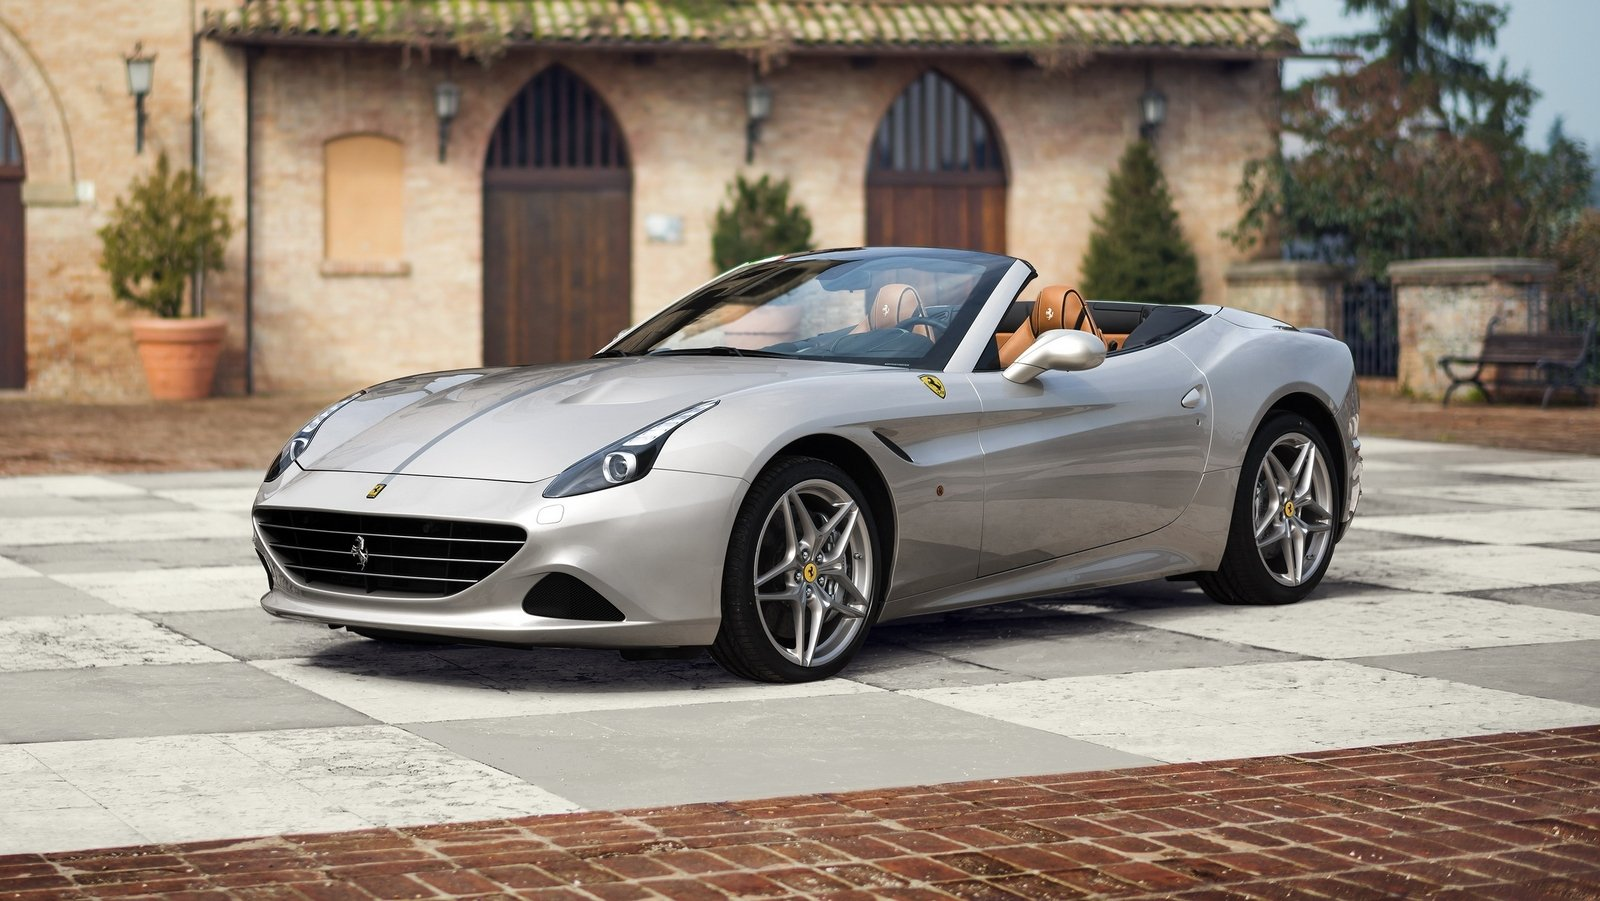 2015 ferrari california t tailor made edition review top speed. Black Bedroom Furniture Sets. Home Design Ideas